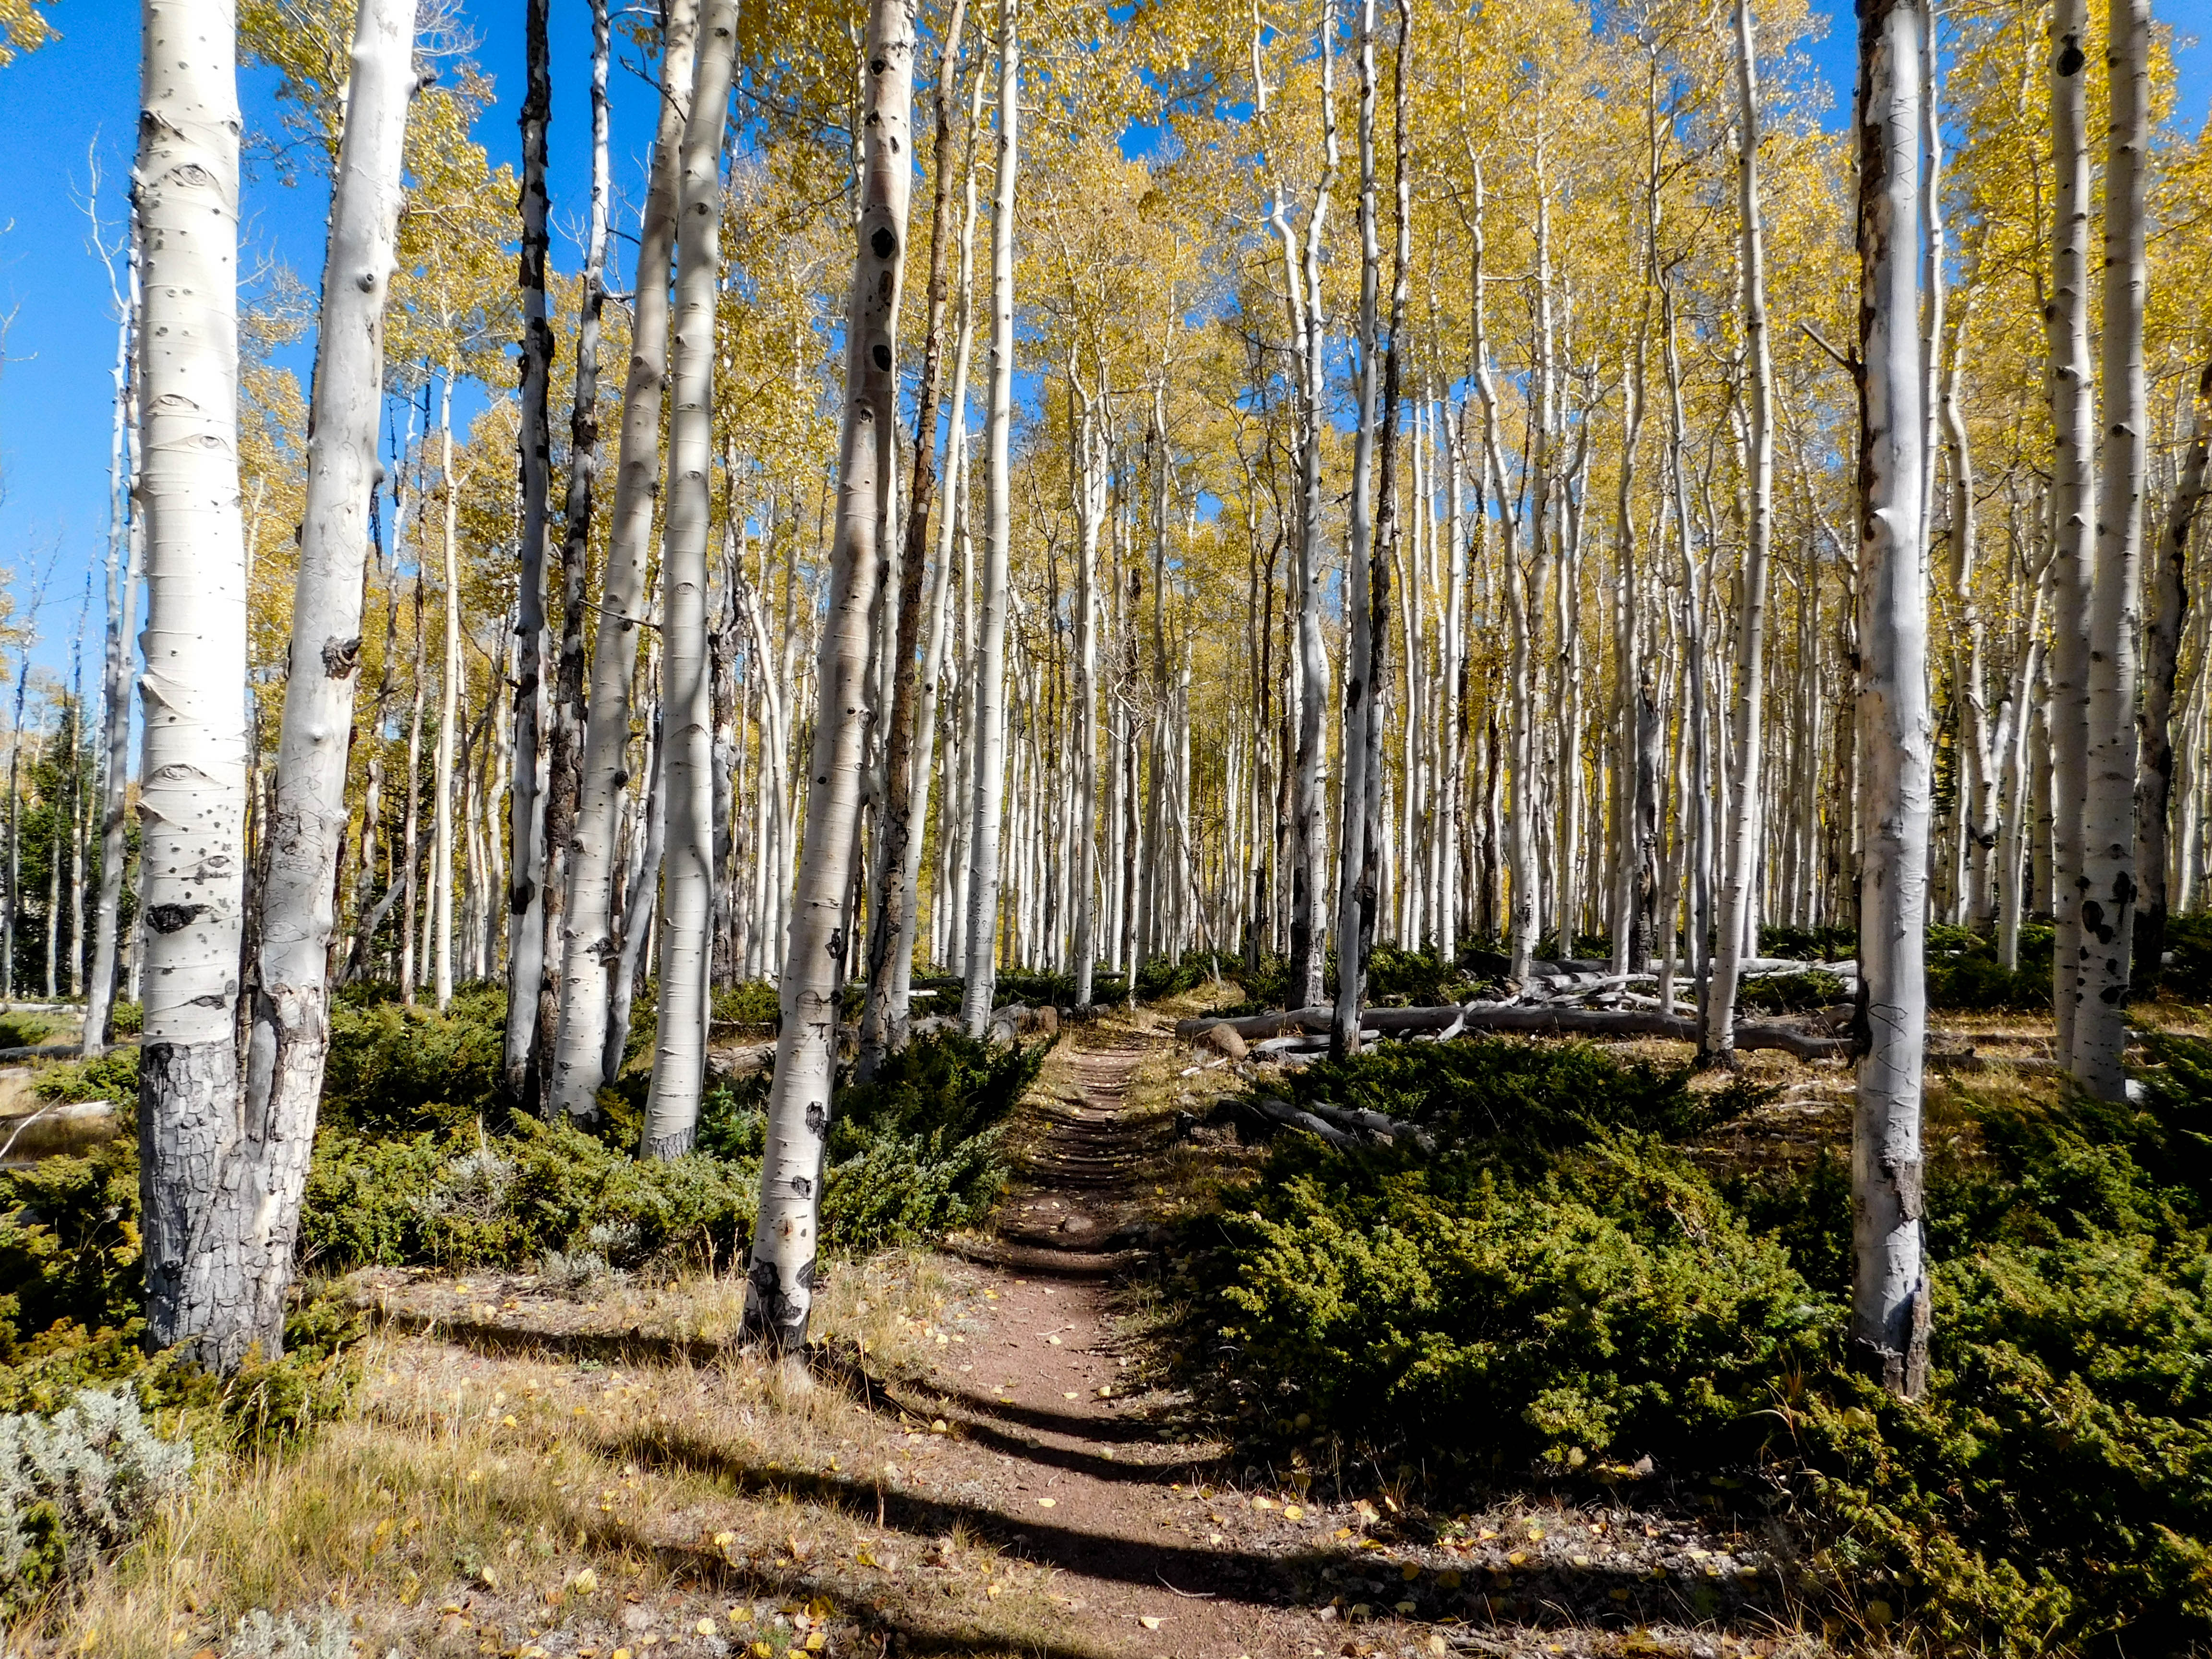 Hike to the Pando overlook via Lakeshore National Recreation Trail at Fish Lake for a glimpse of the world s most massive known living thing